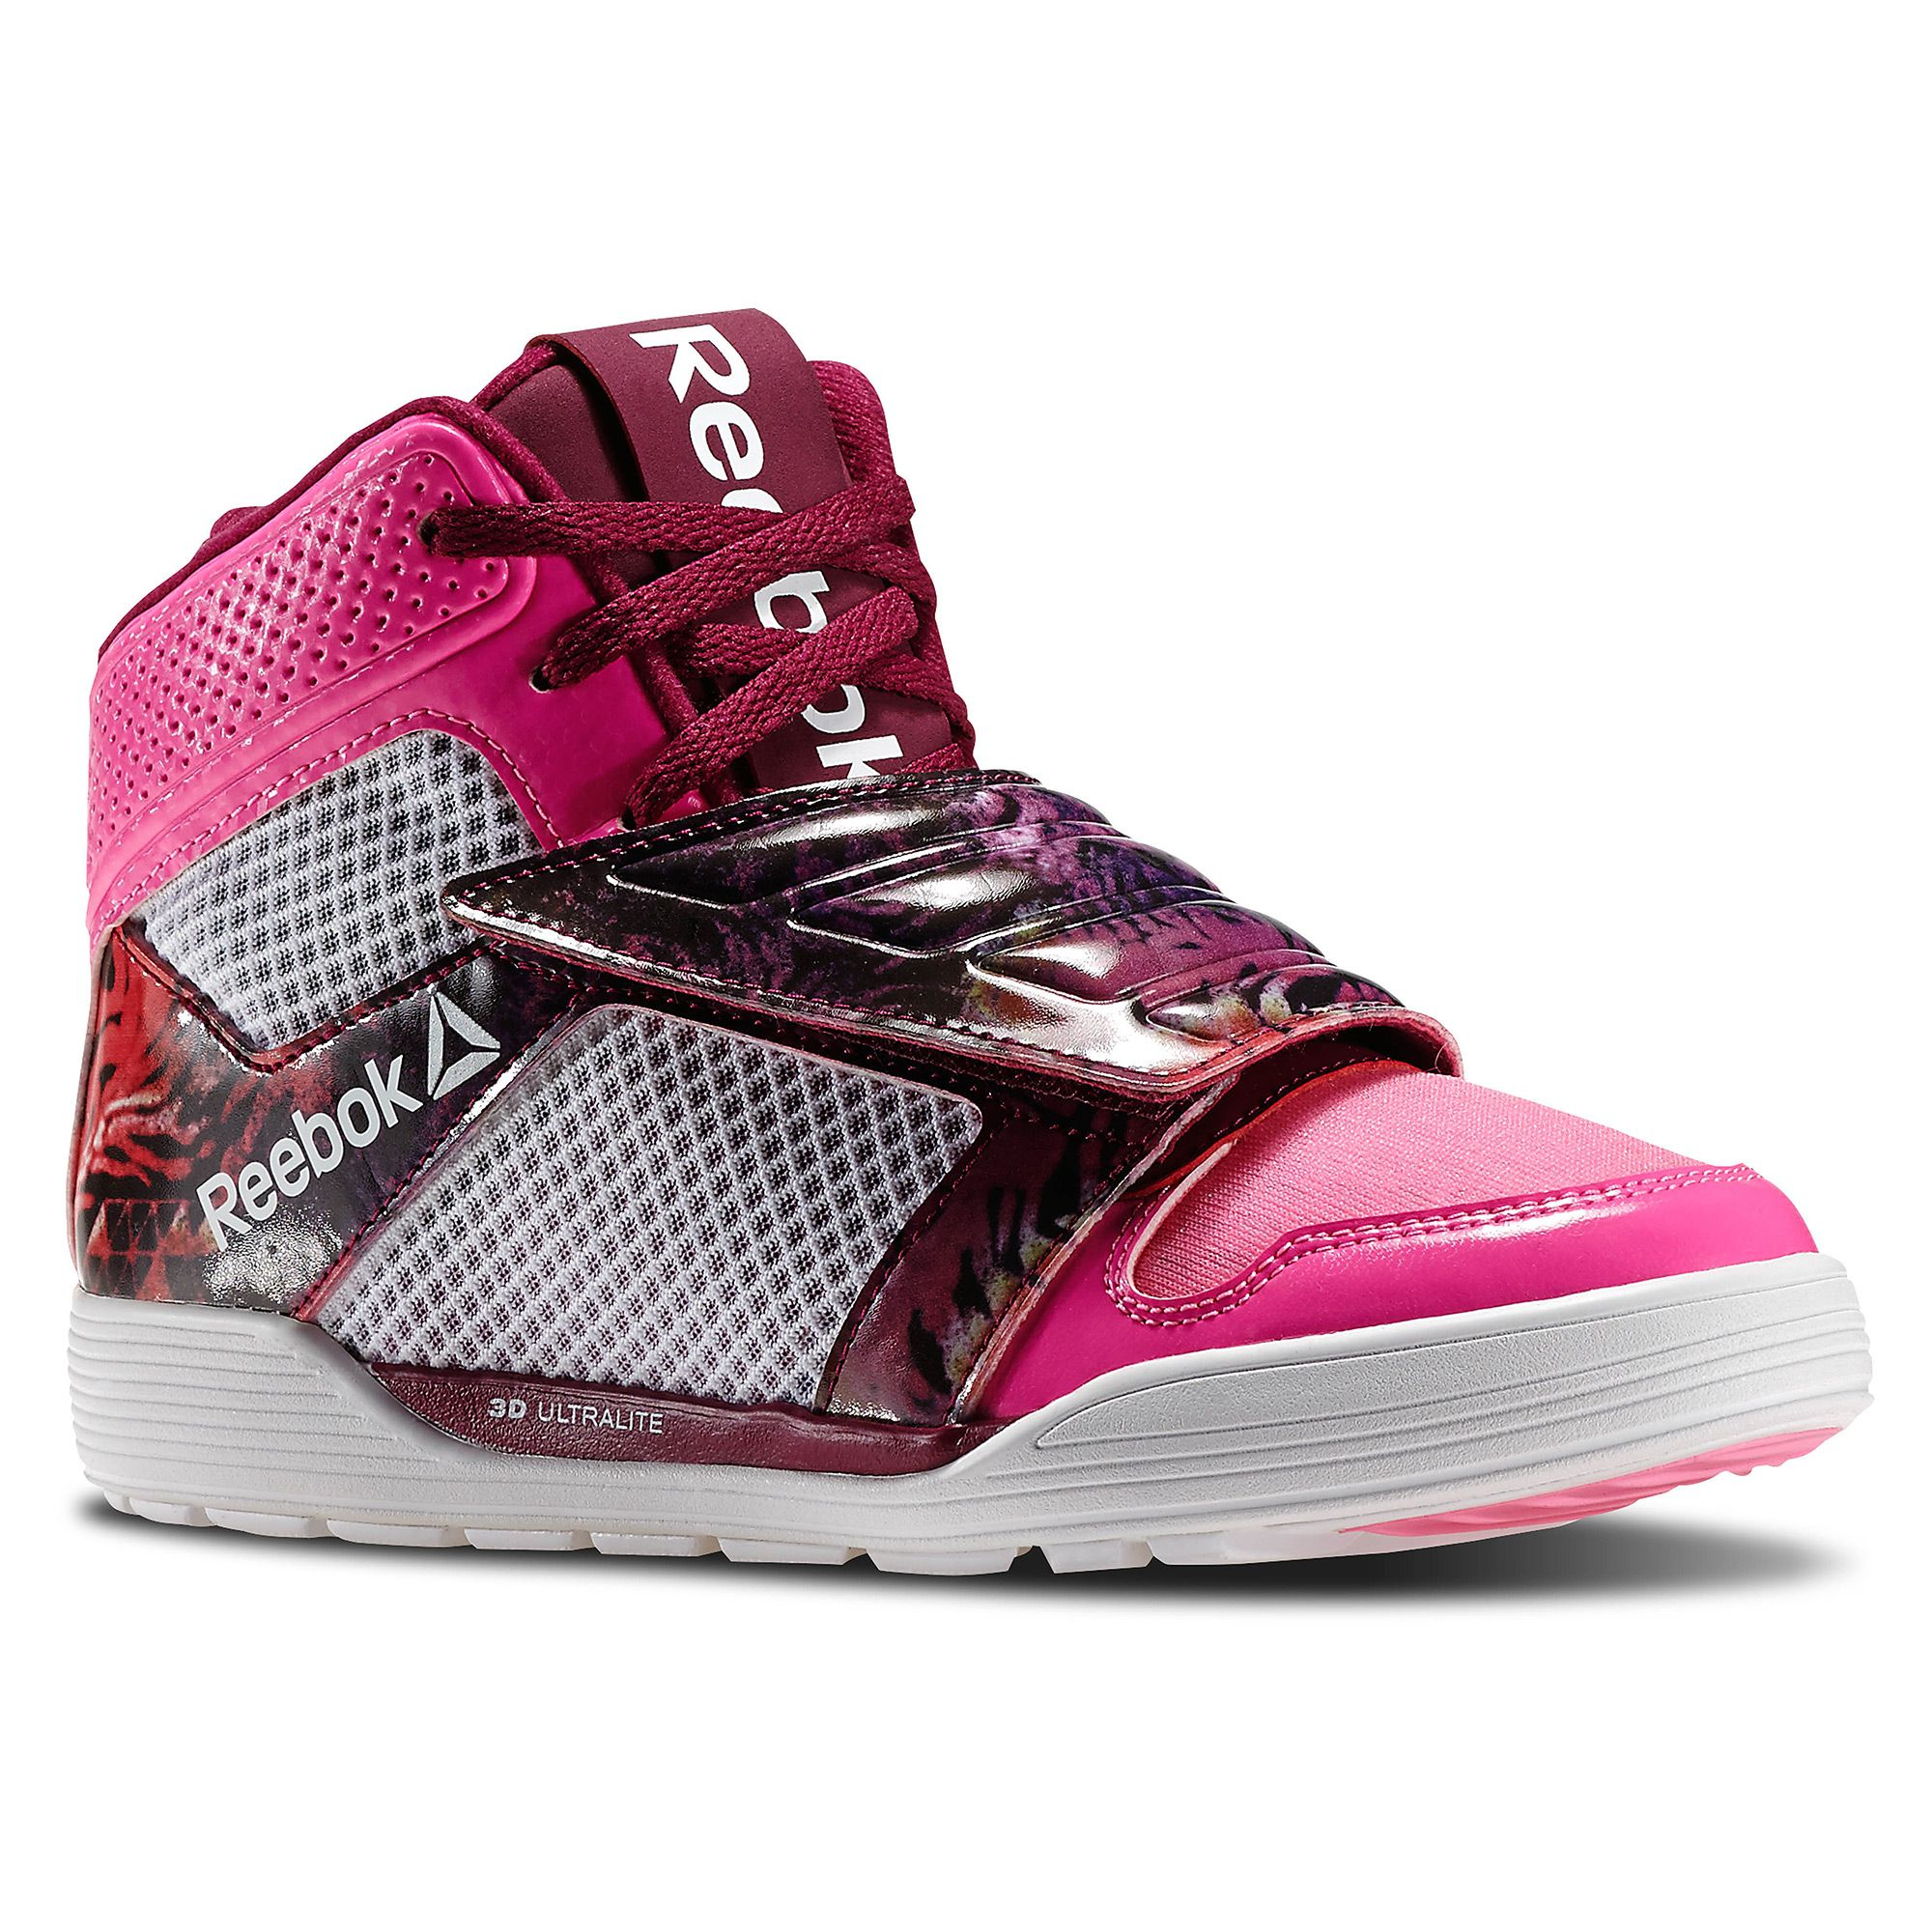 Reebok-running-shoes-and-sportsshoes-for-women (3)